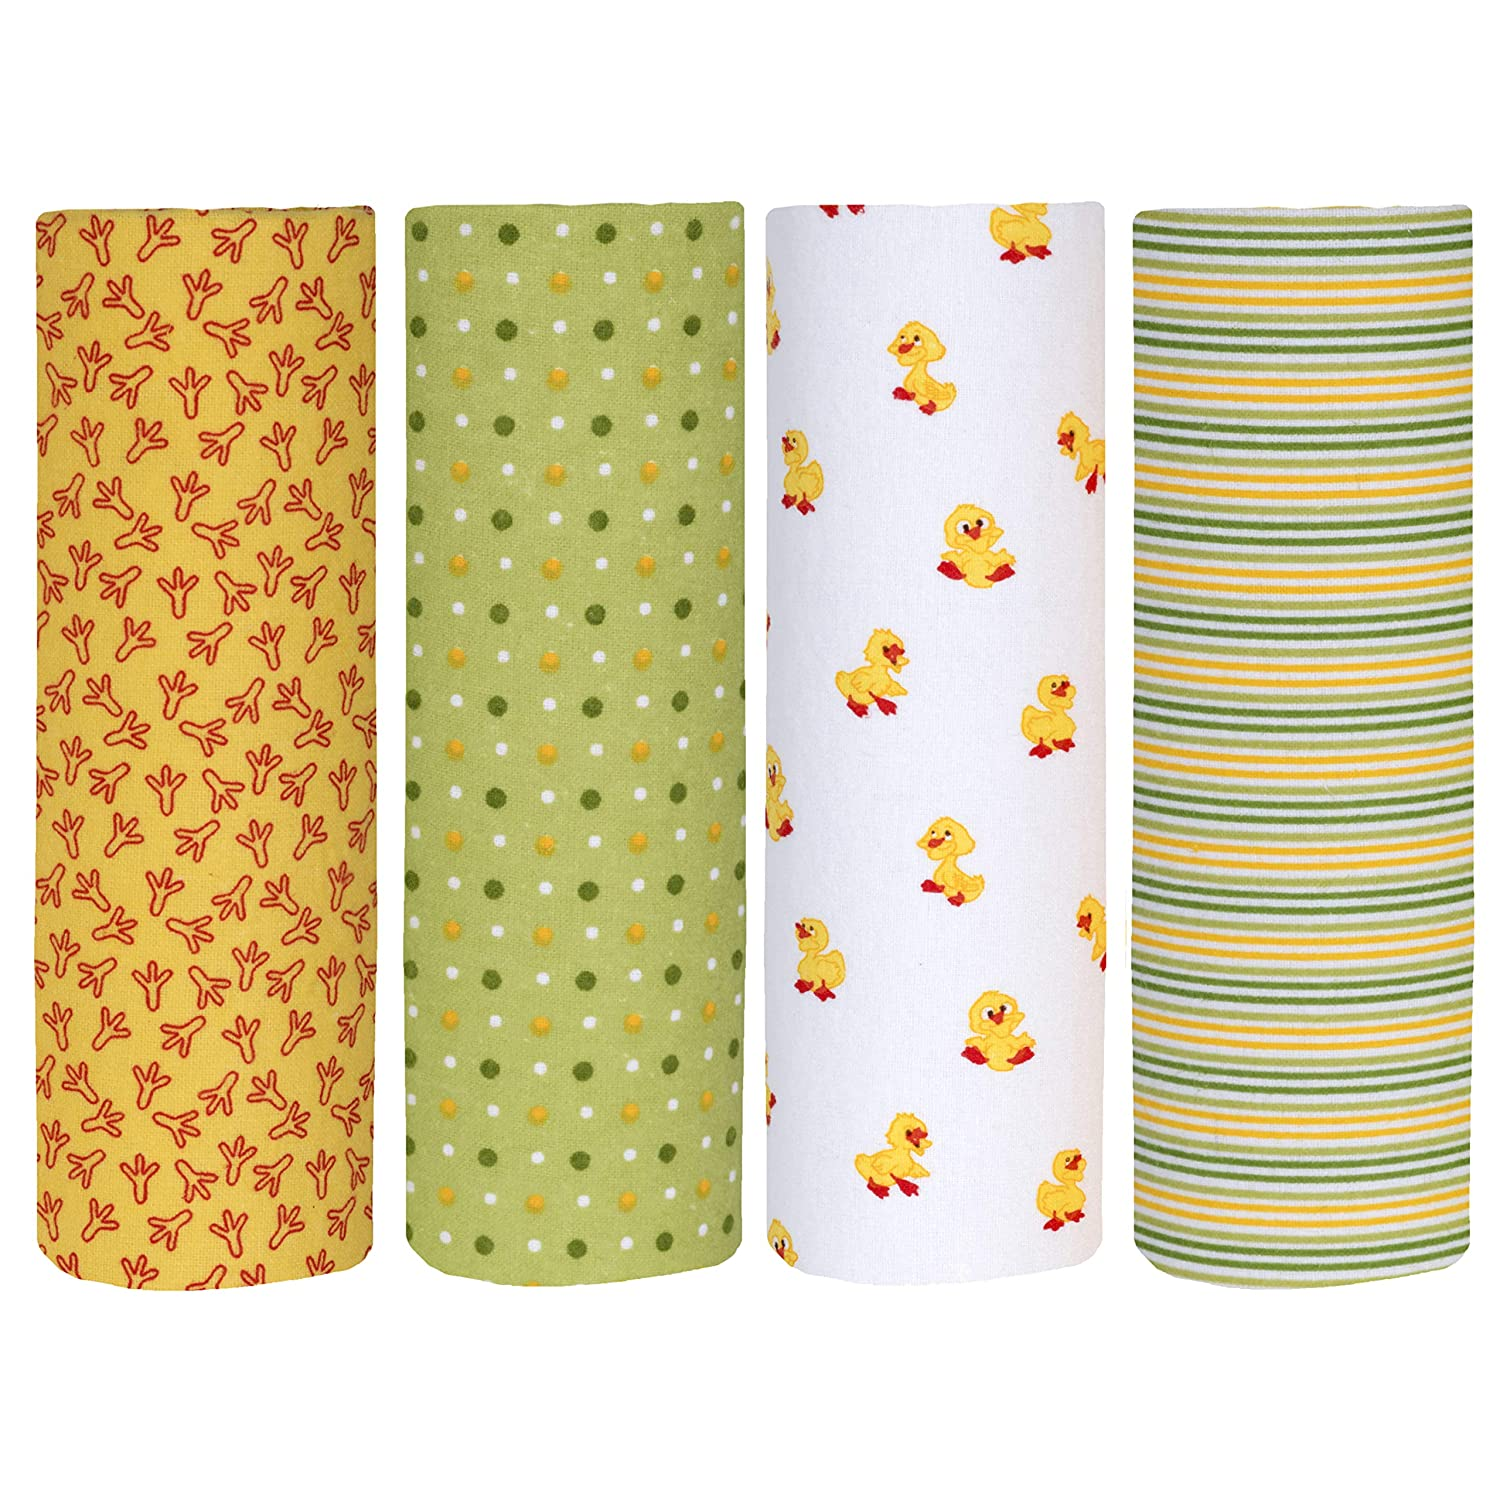 Pack of 4 Cuddles /& Cribs Cotton Flannel Receiving Blankets